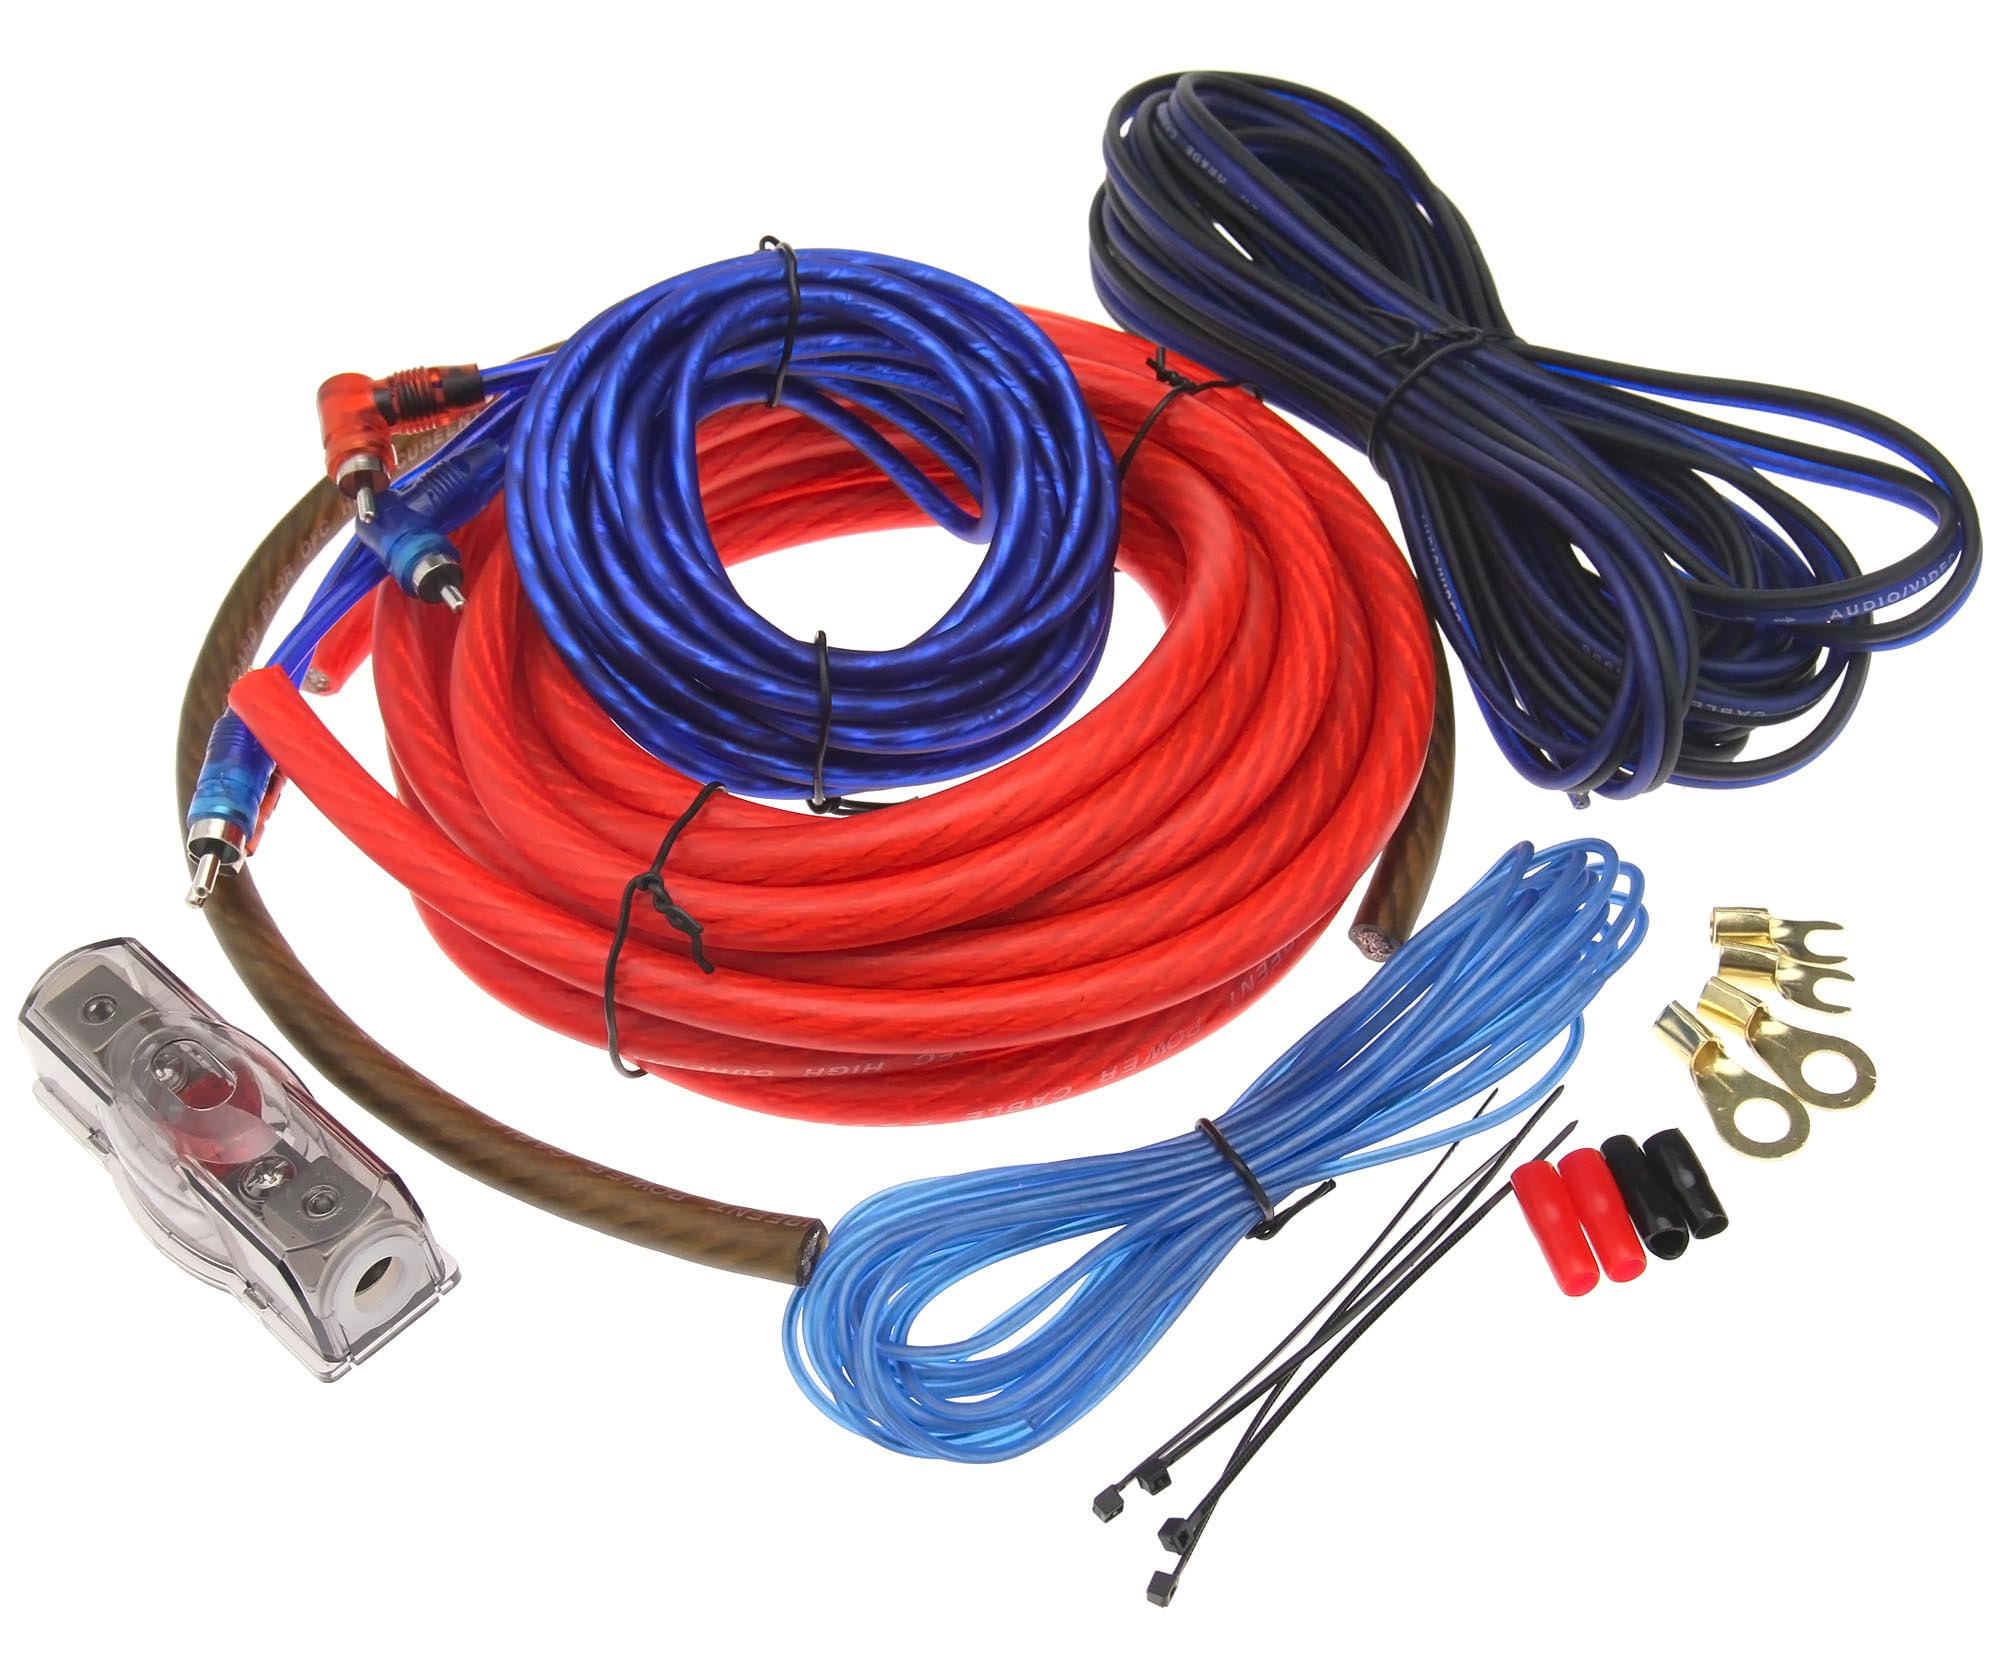 4 awg gauge amp amplifier bass cable wiring kit car audio high rh ebay com